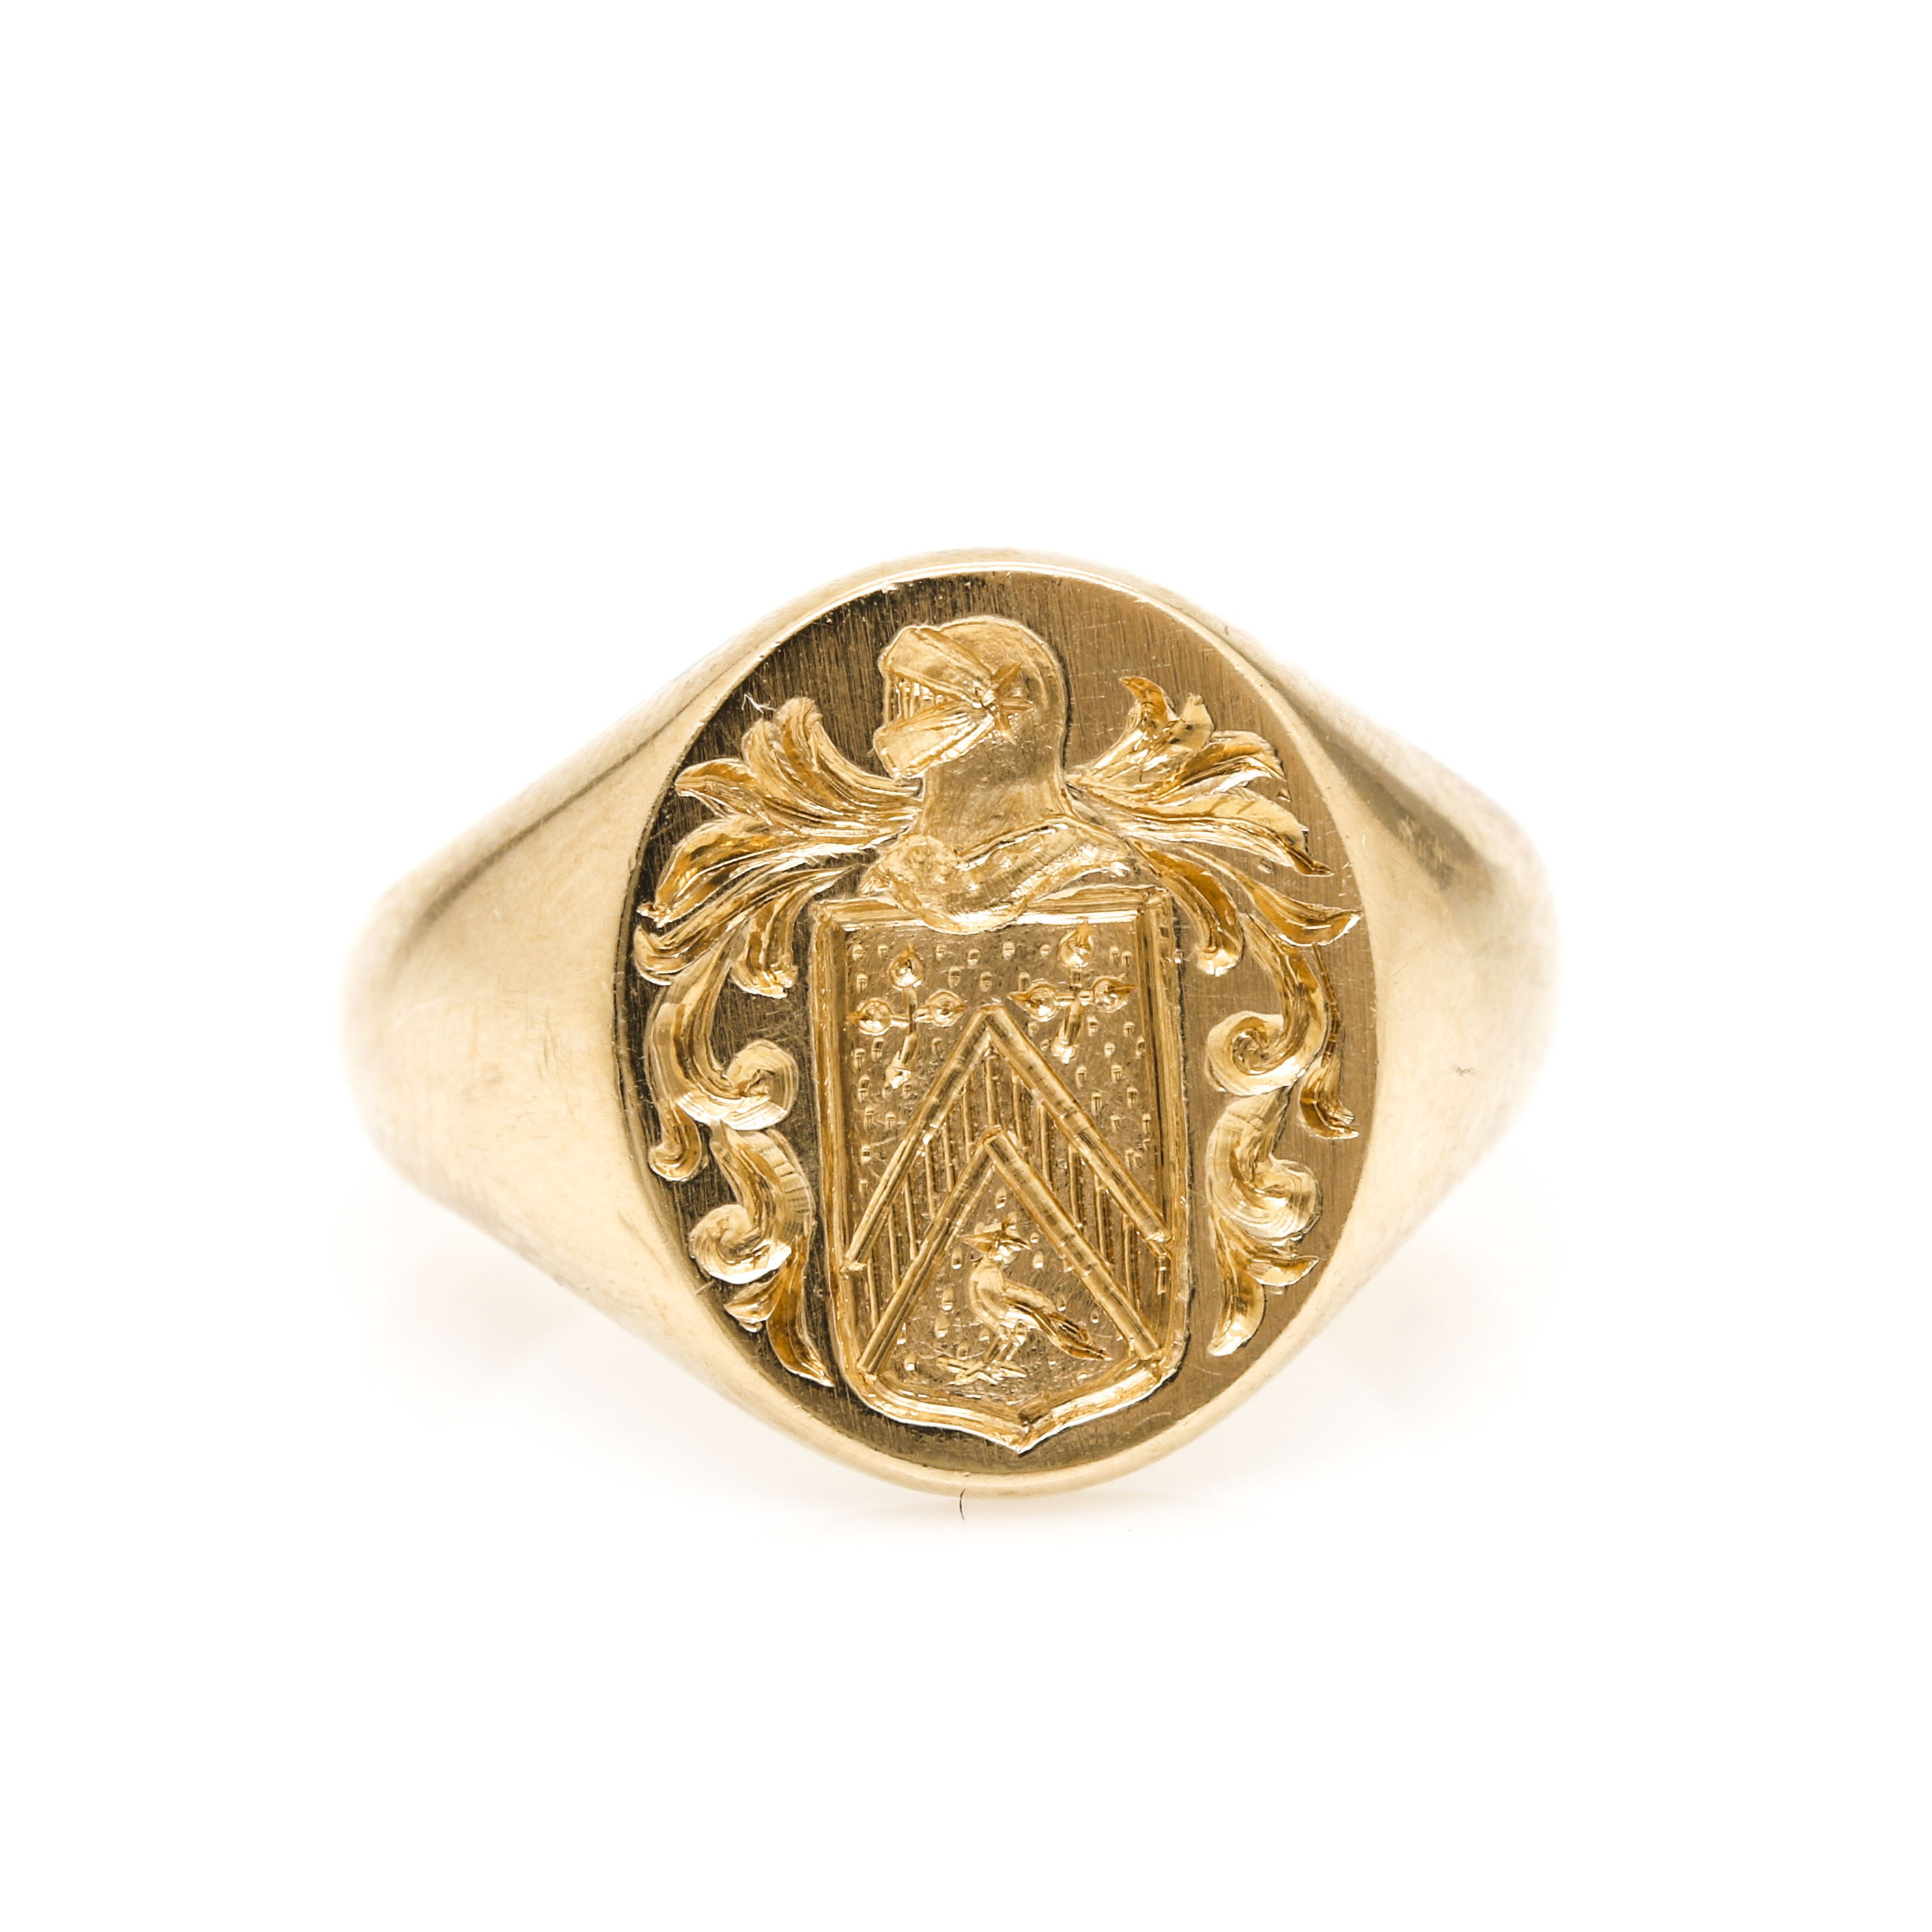 14K Yellow Gold Signet Ring with Crest